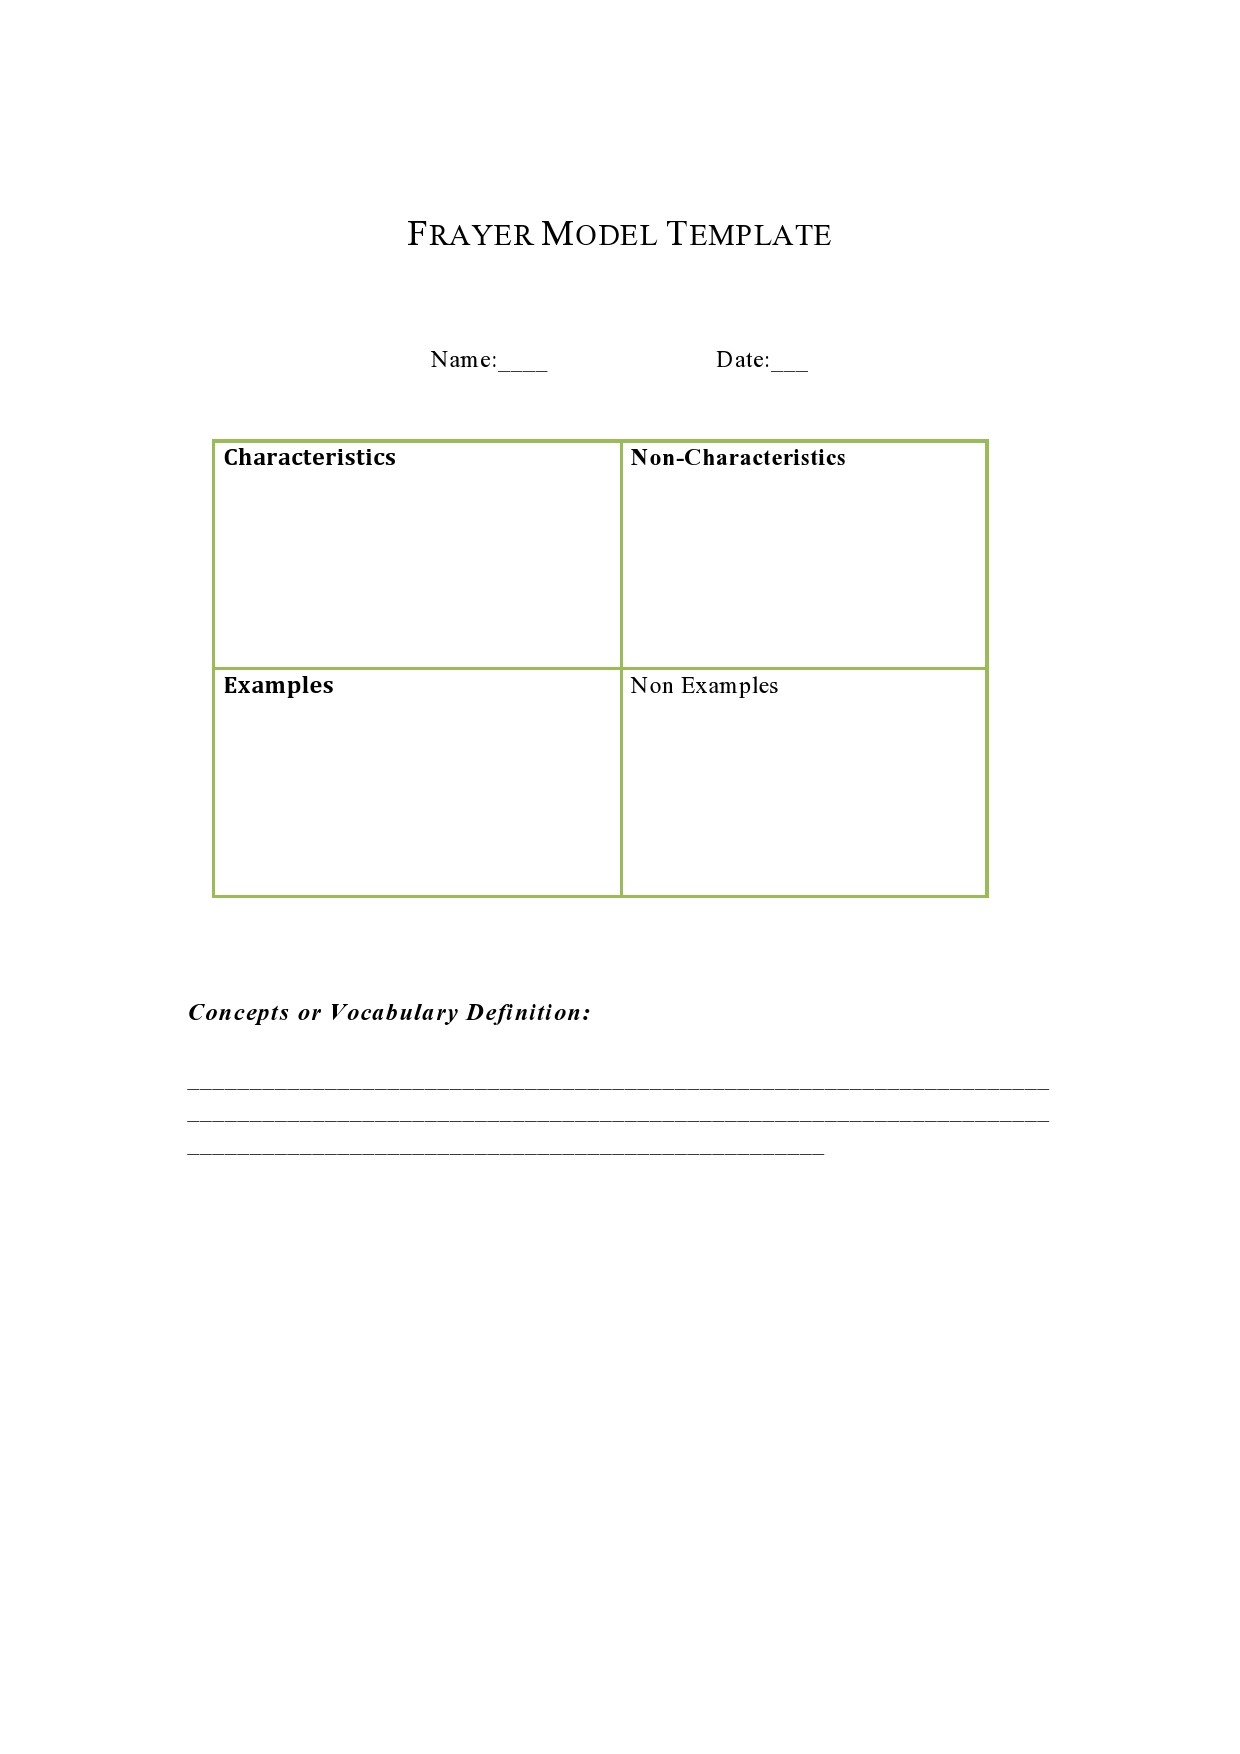 Free frayer model template 12